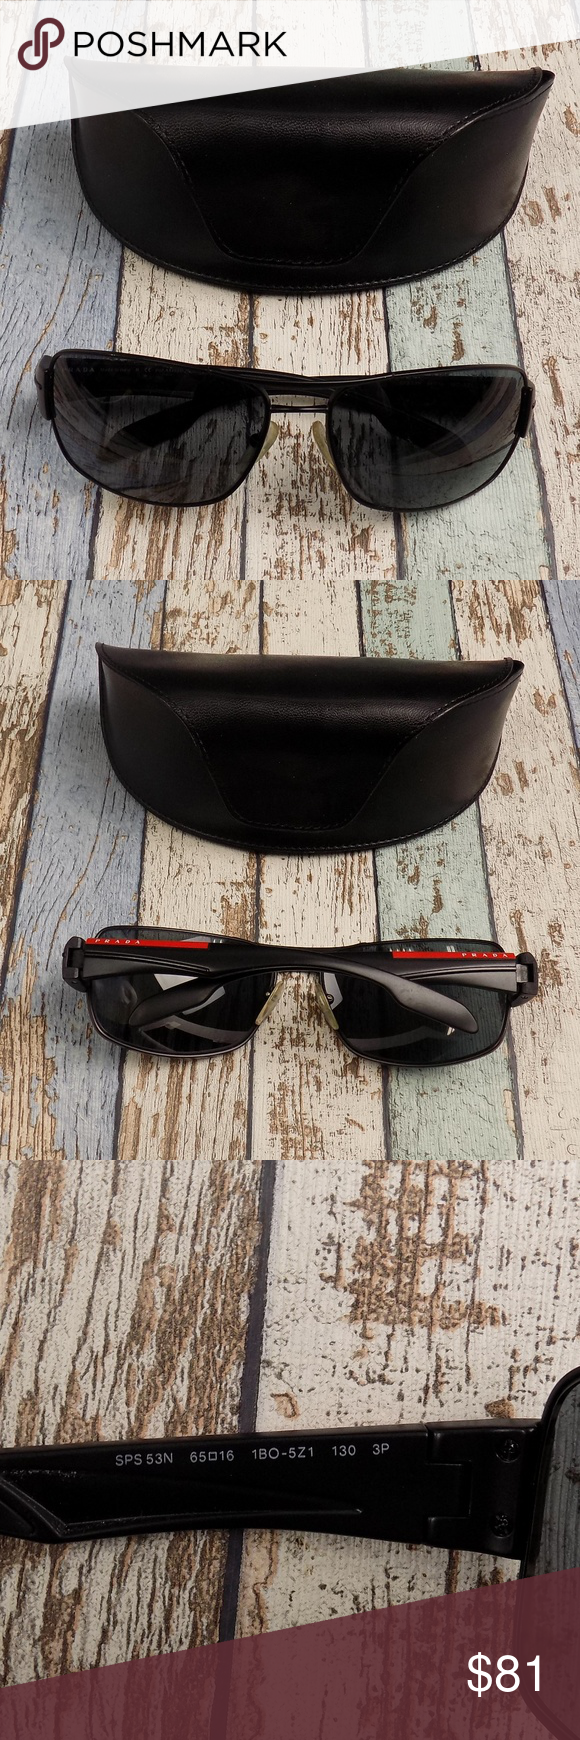 78d80a8ddafd2 Prada SPS 53N Men Sunglasses Italy DIL826 Made in  Italy Lens Condition   lenses